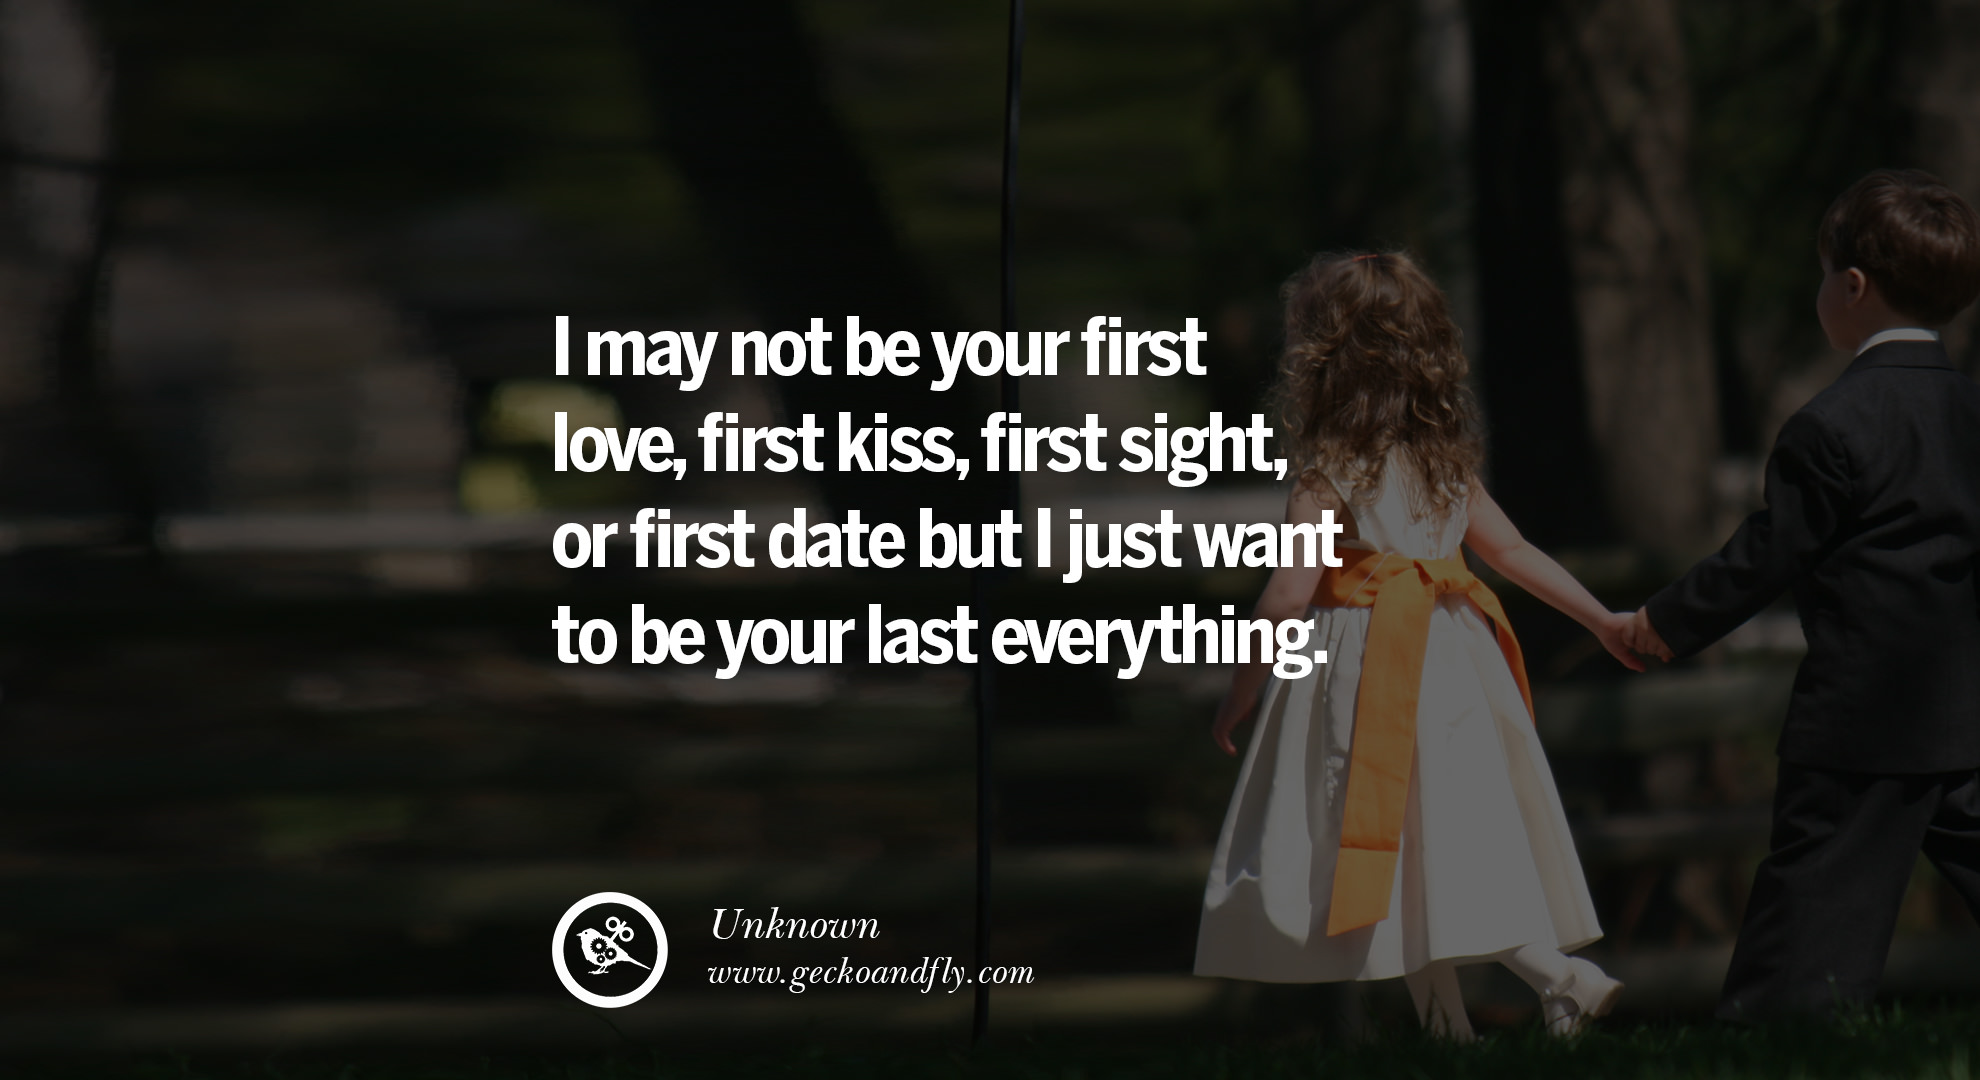 Quotes About Love Not Lasting : quotes about love I may not be your first love, first kiss, first ...